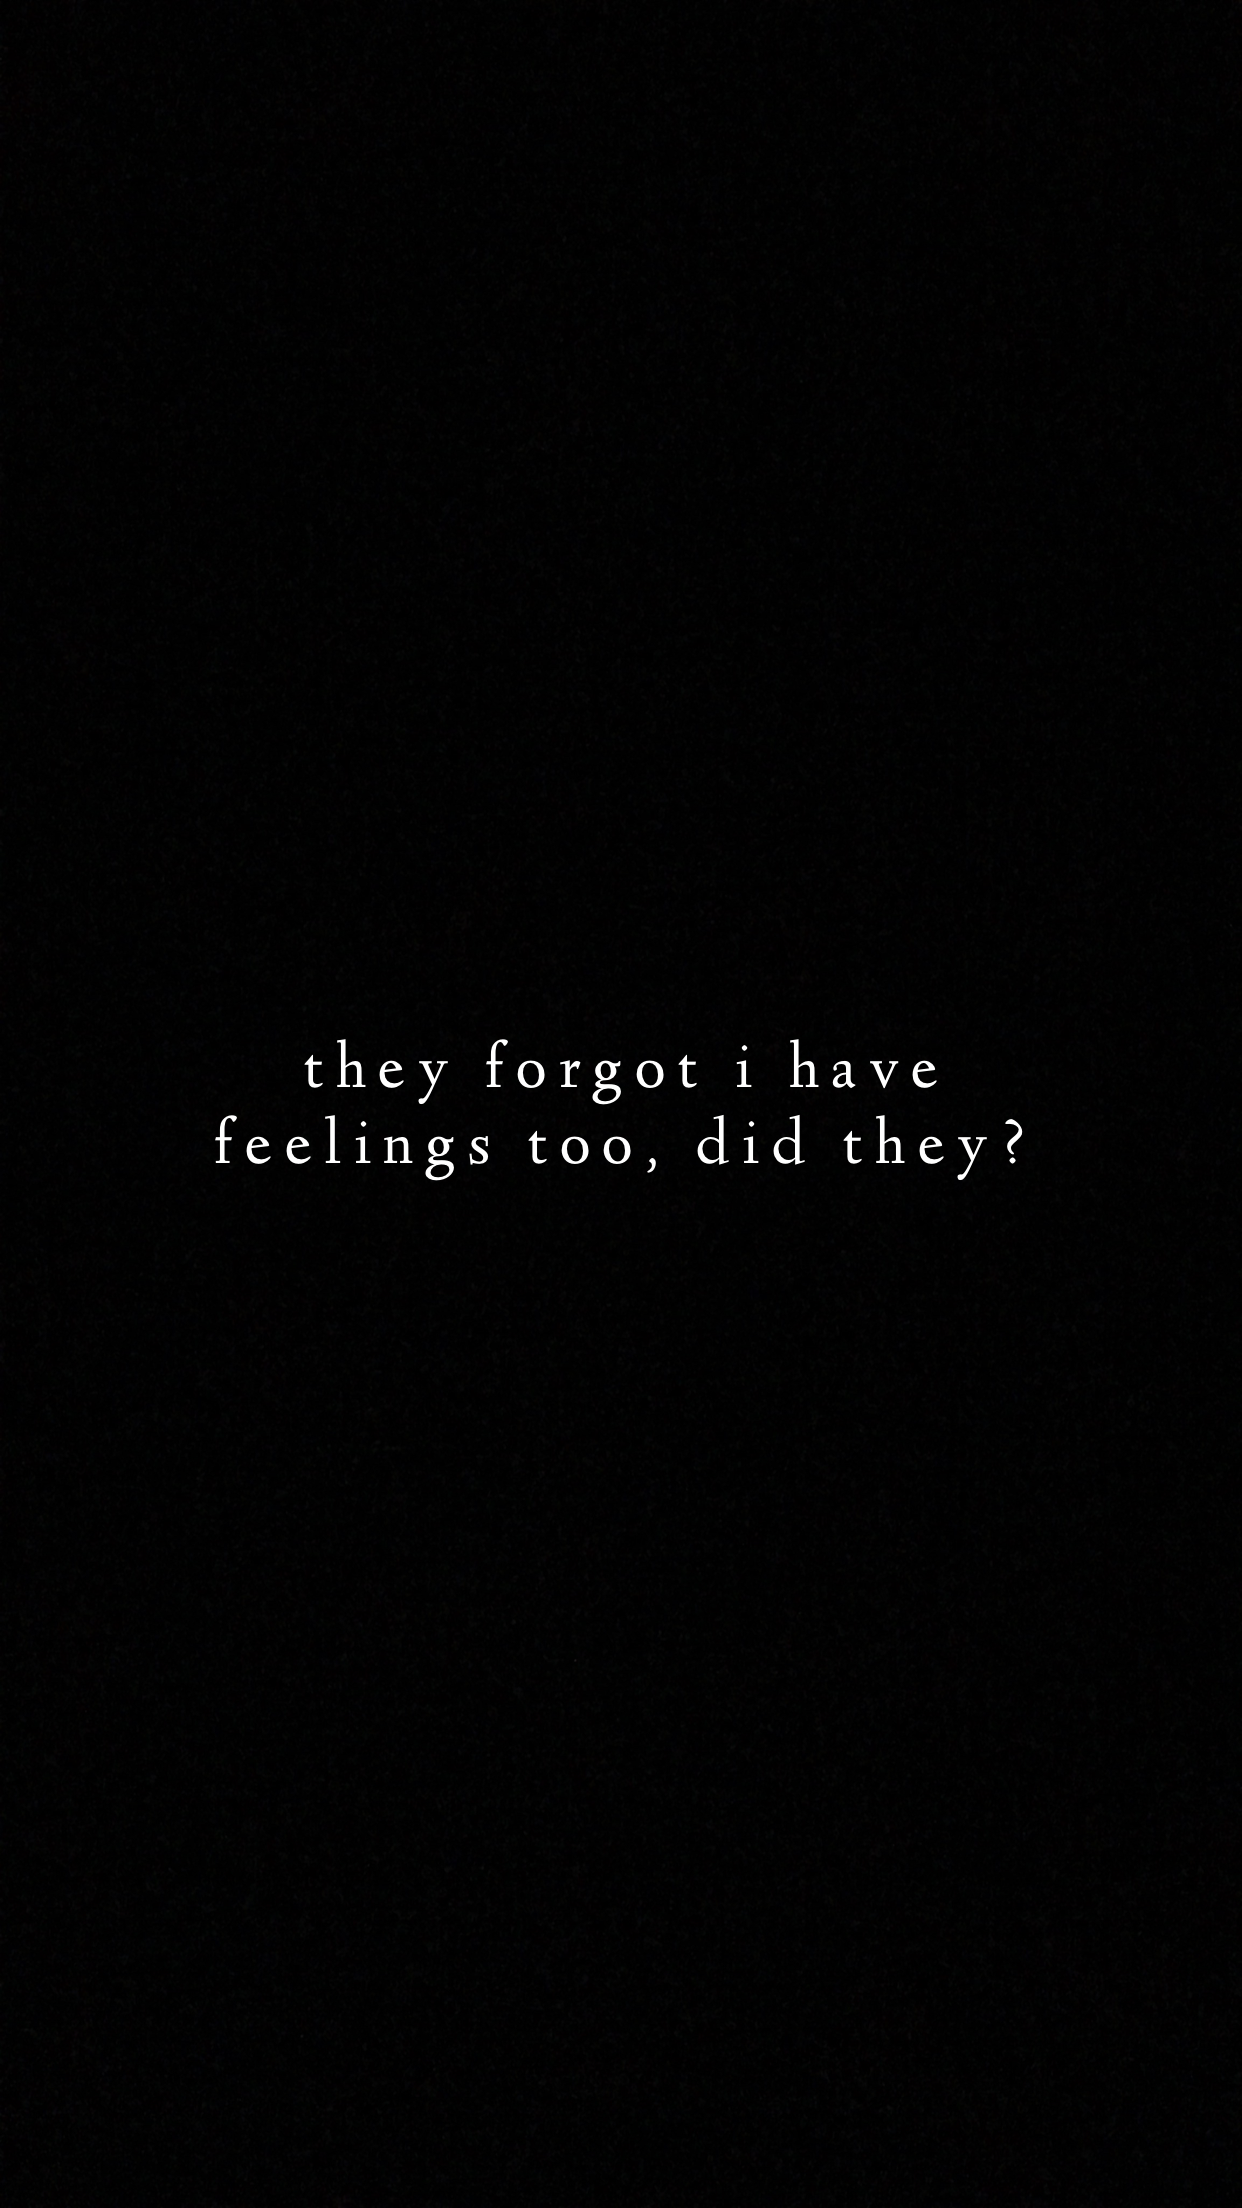 Feelings Black Background Quotes Memes Quotes Words Wallpaper